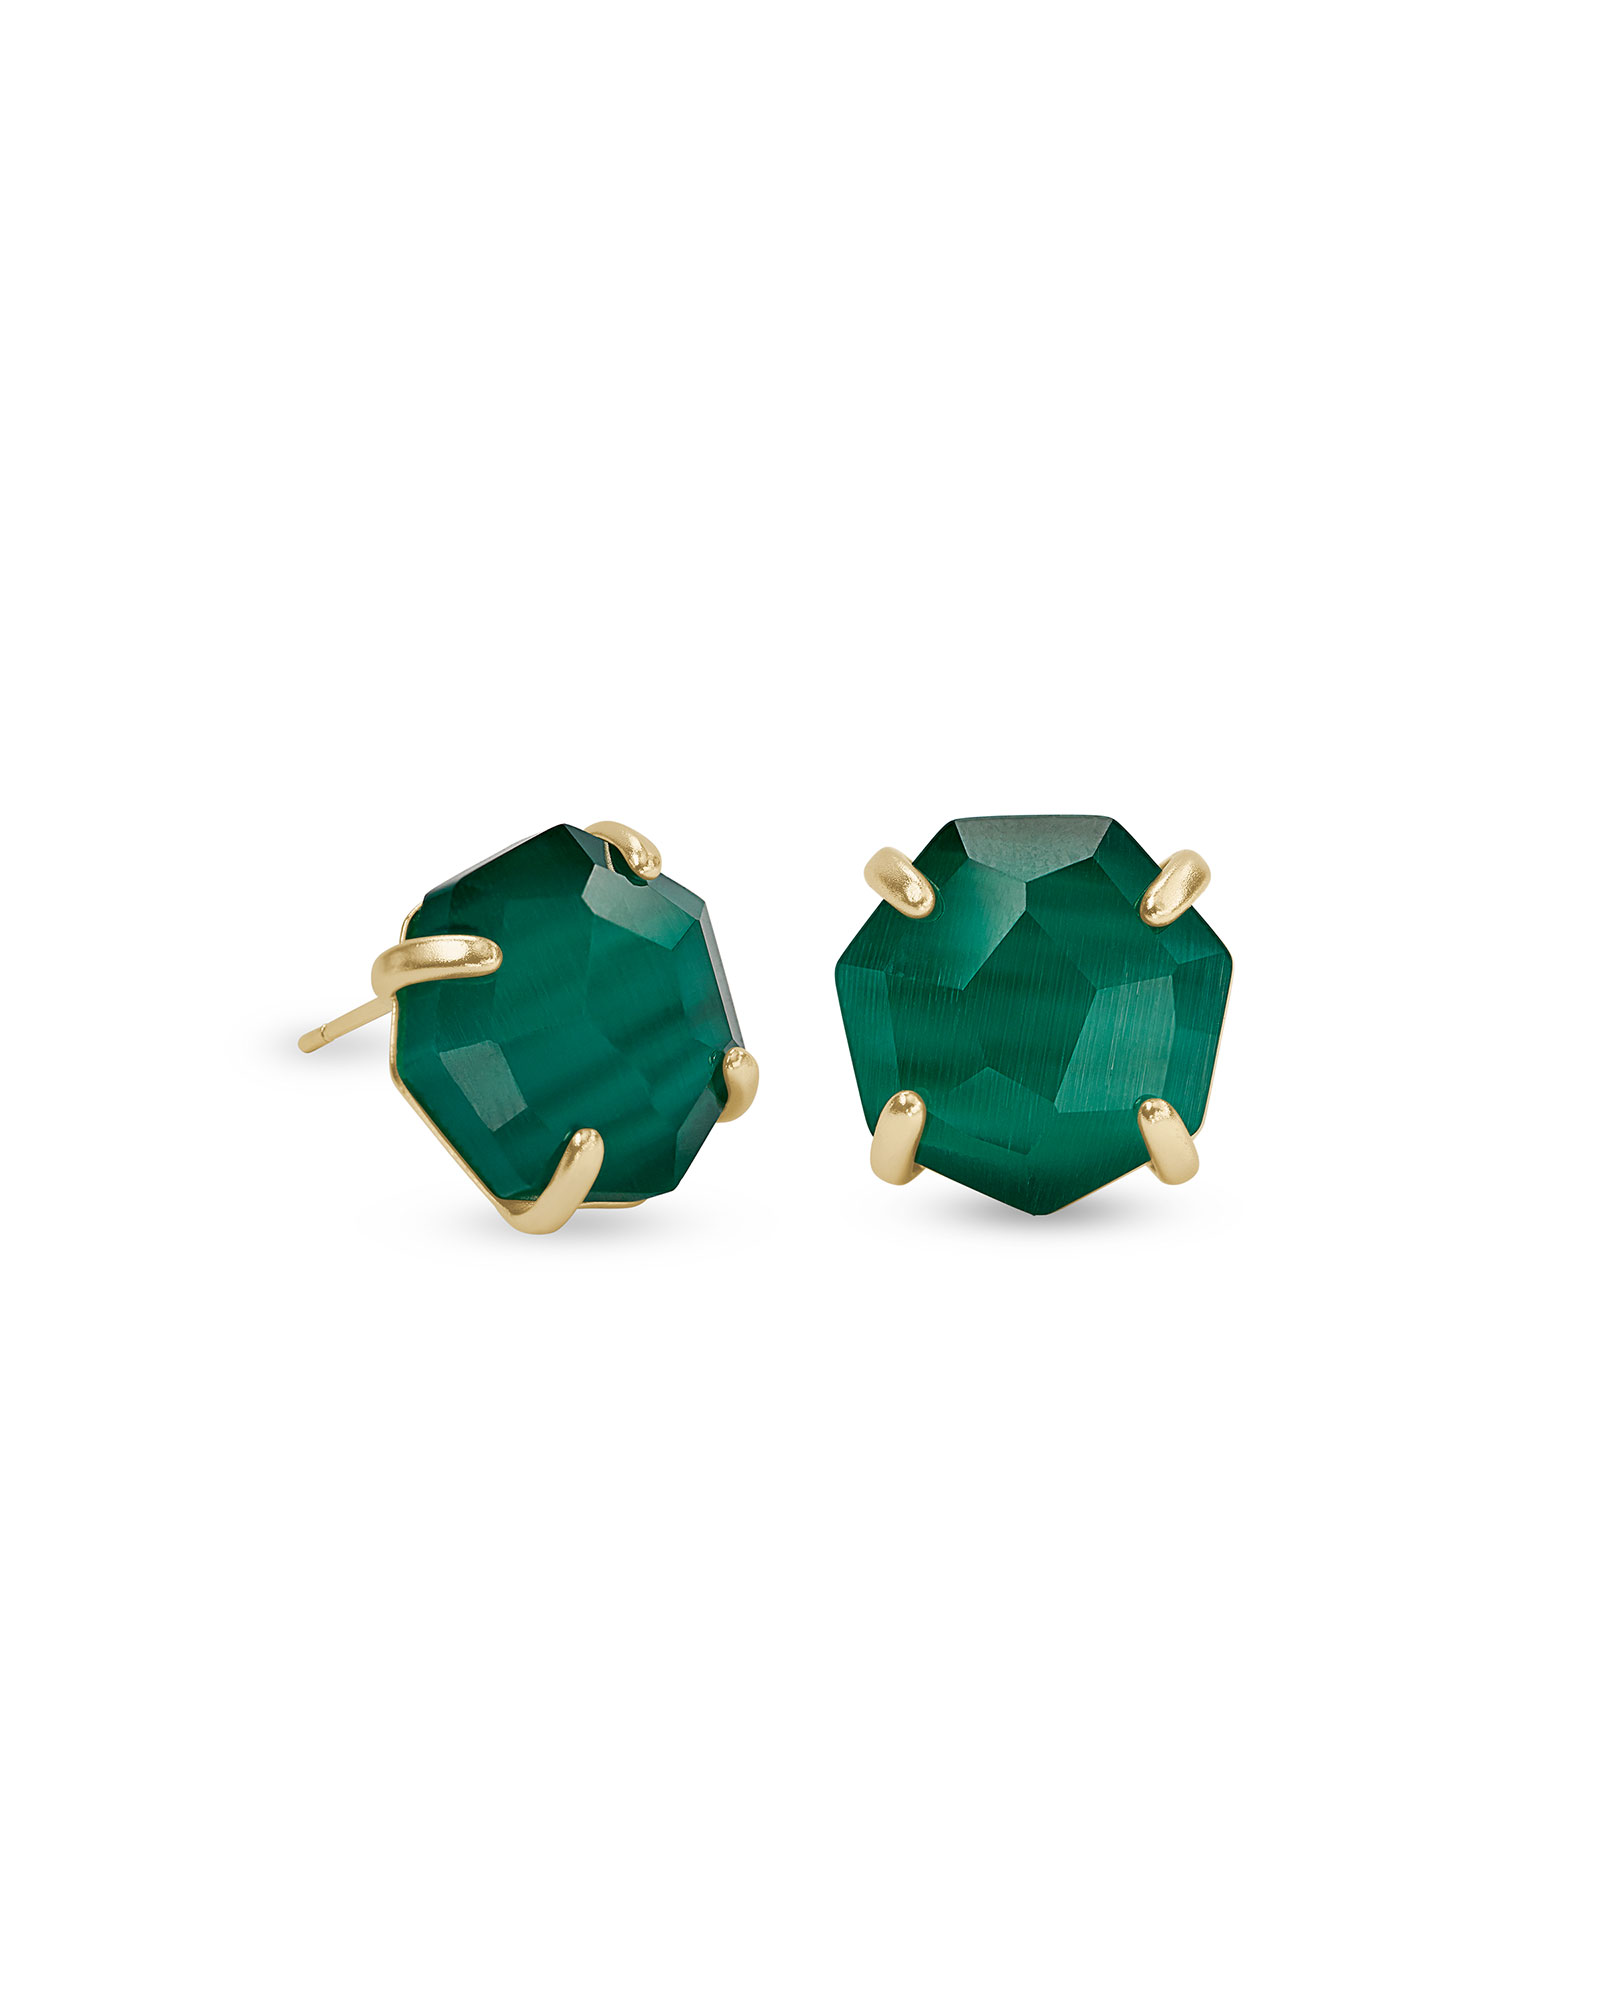 Ryan Gold Stud Earrings in Emerald Green Cat's Eye